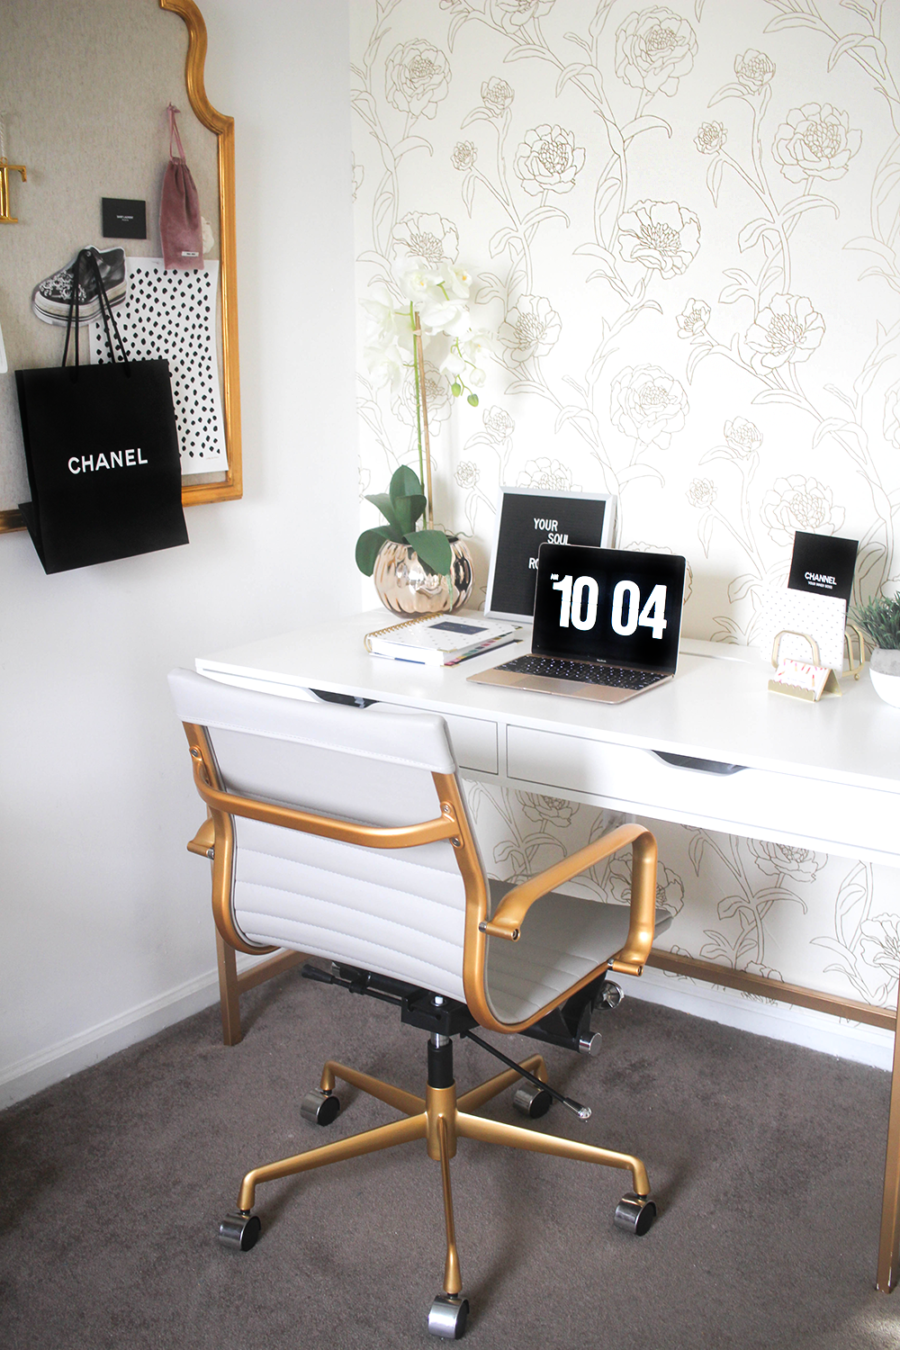 Most Fashionable Home Offices for Cool Telecommuters | Pinterest ...